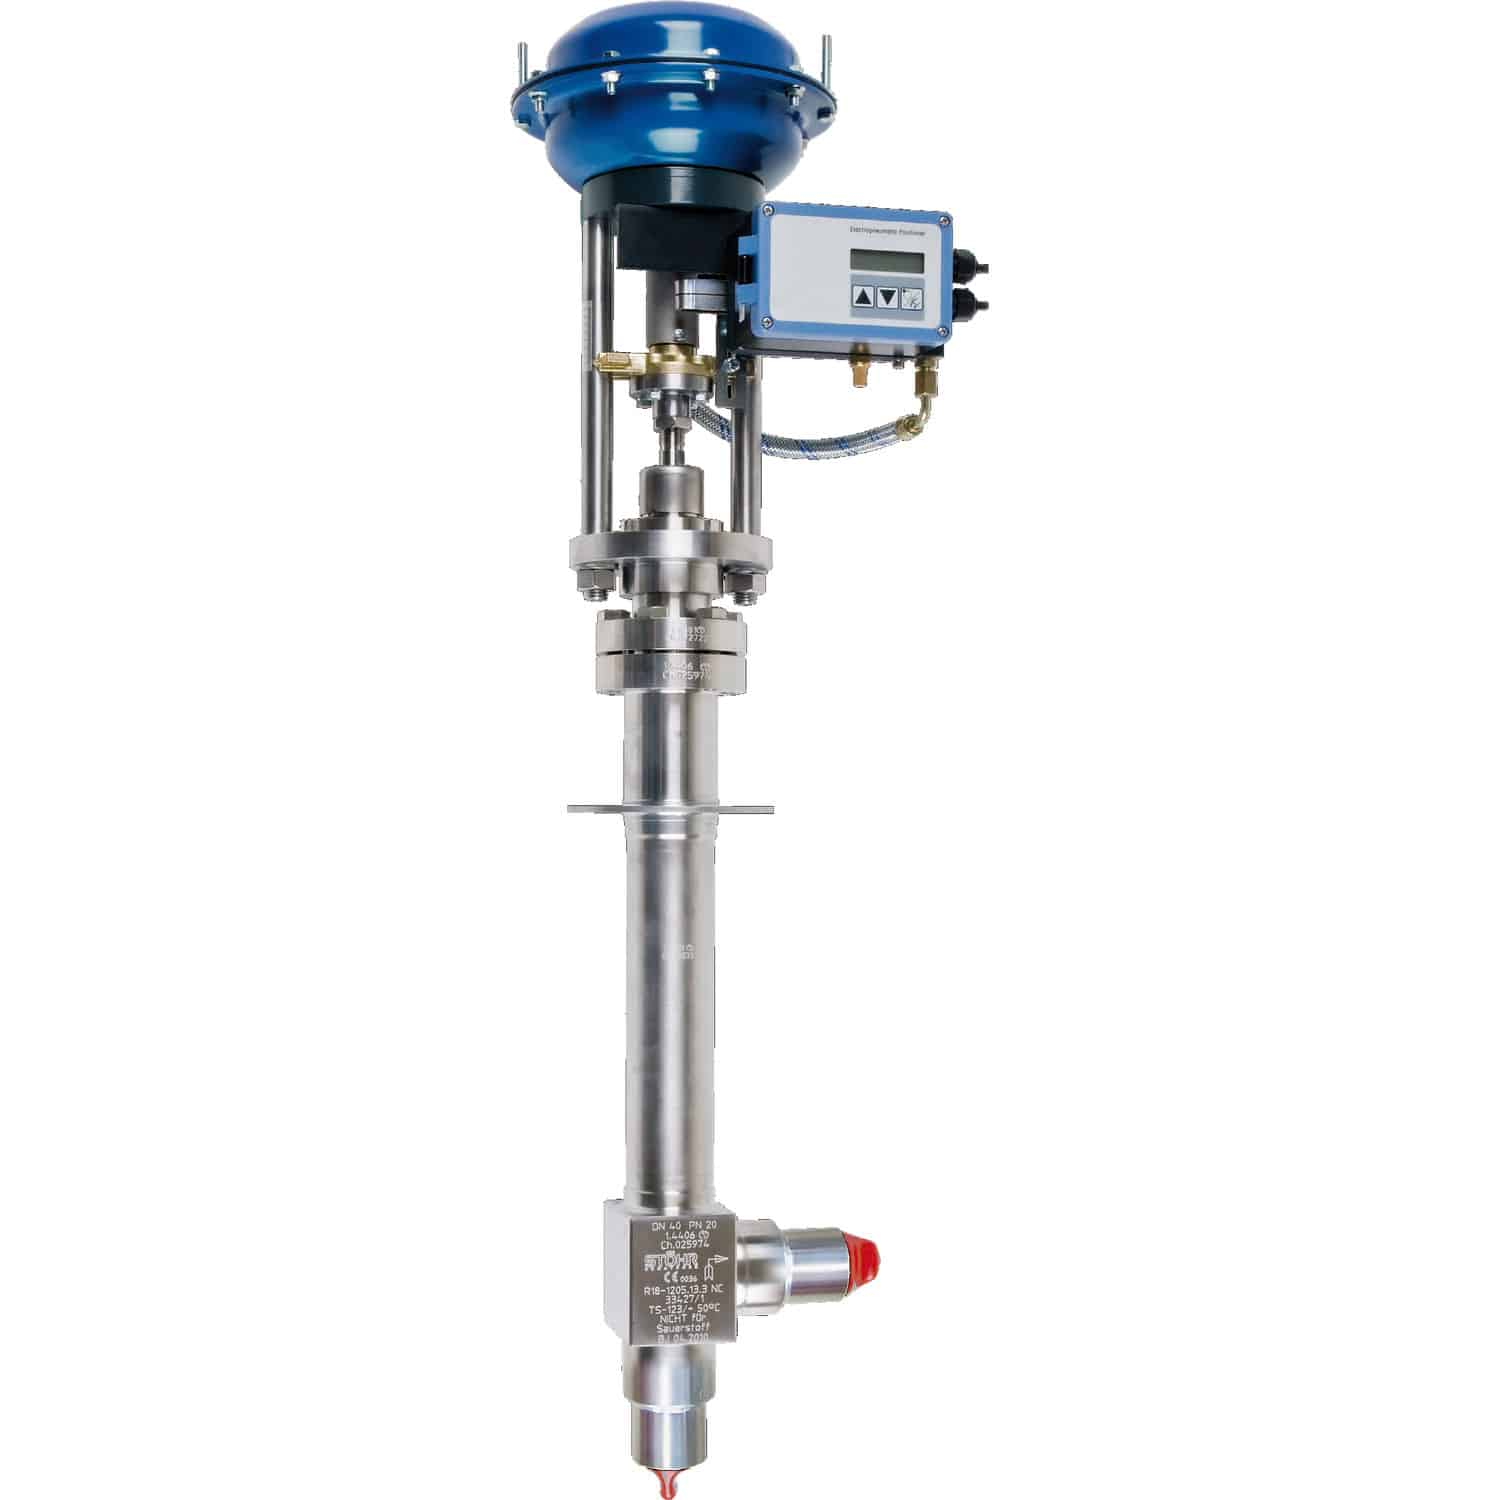 Take Armaturen Globe Valve Manual Pneumatically Operated Stainless Steel